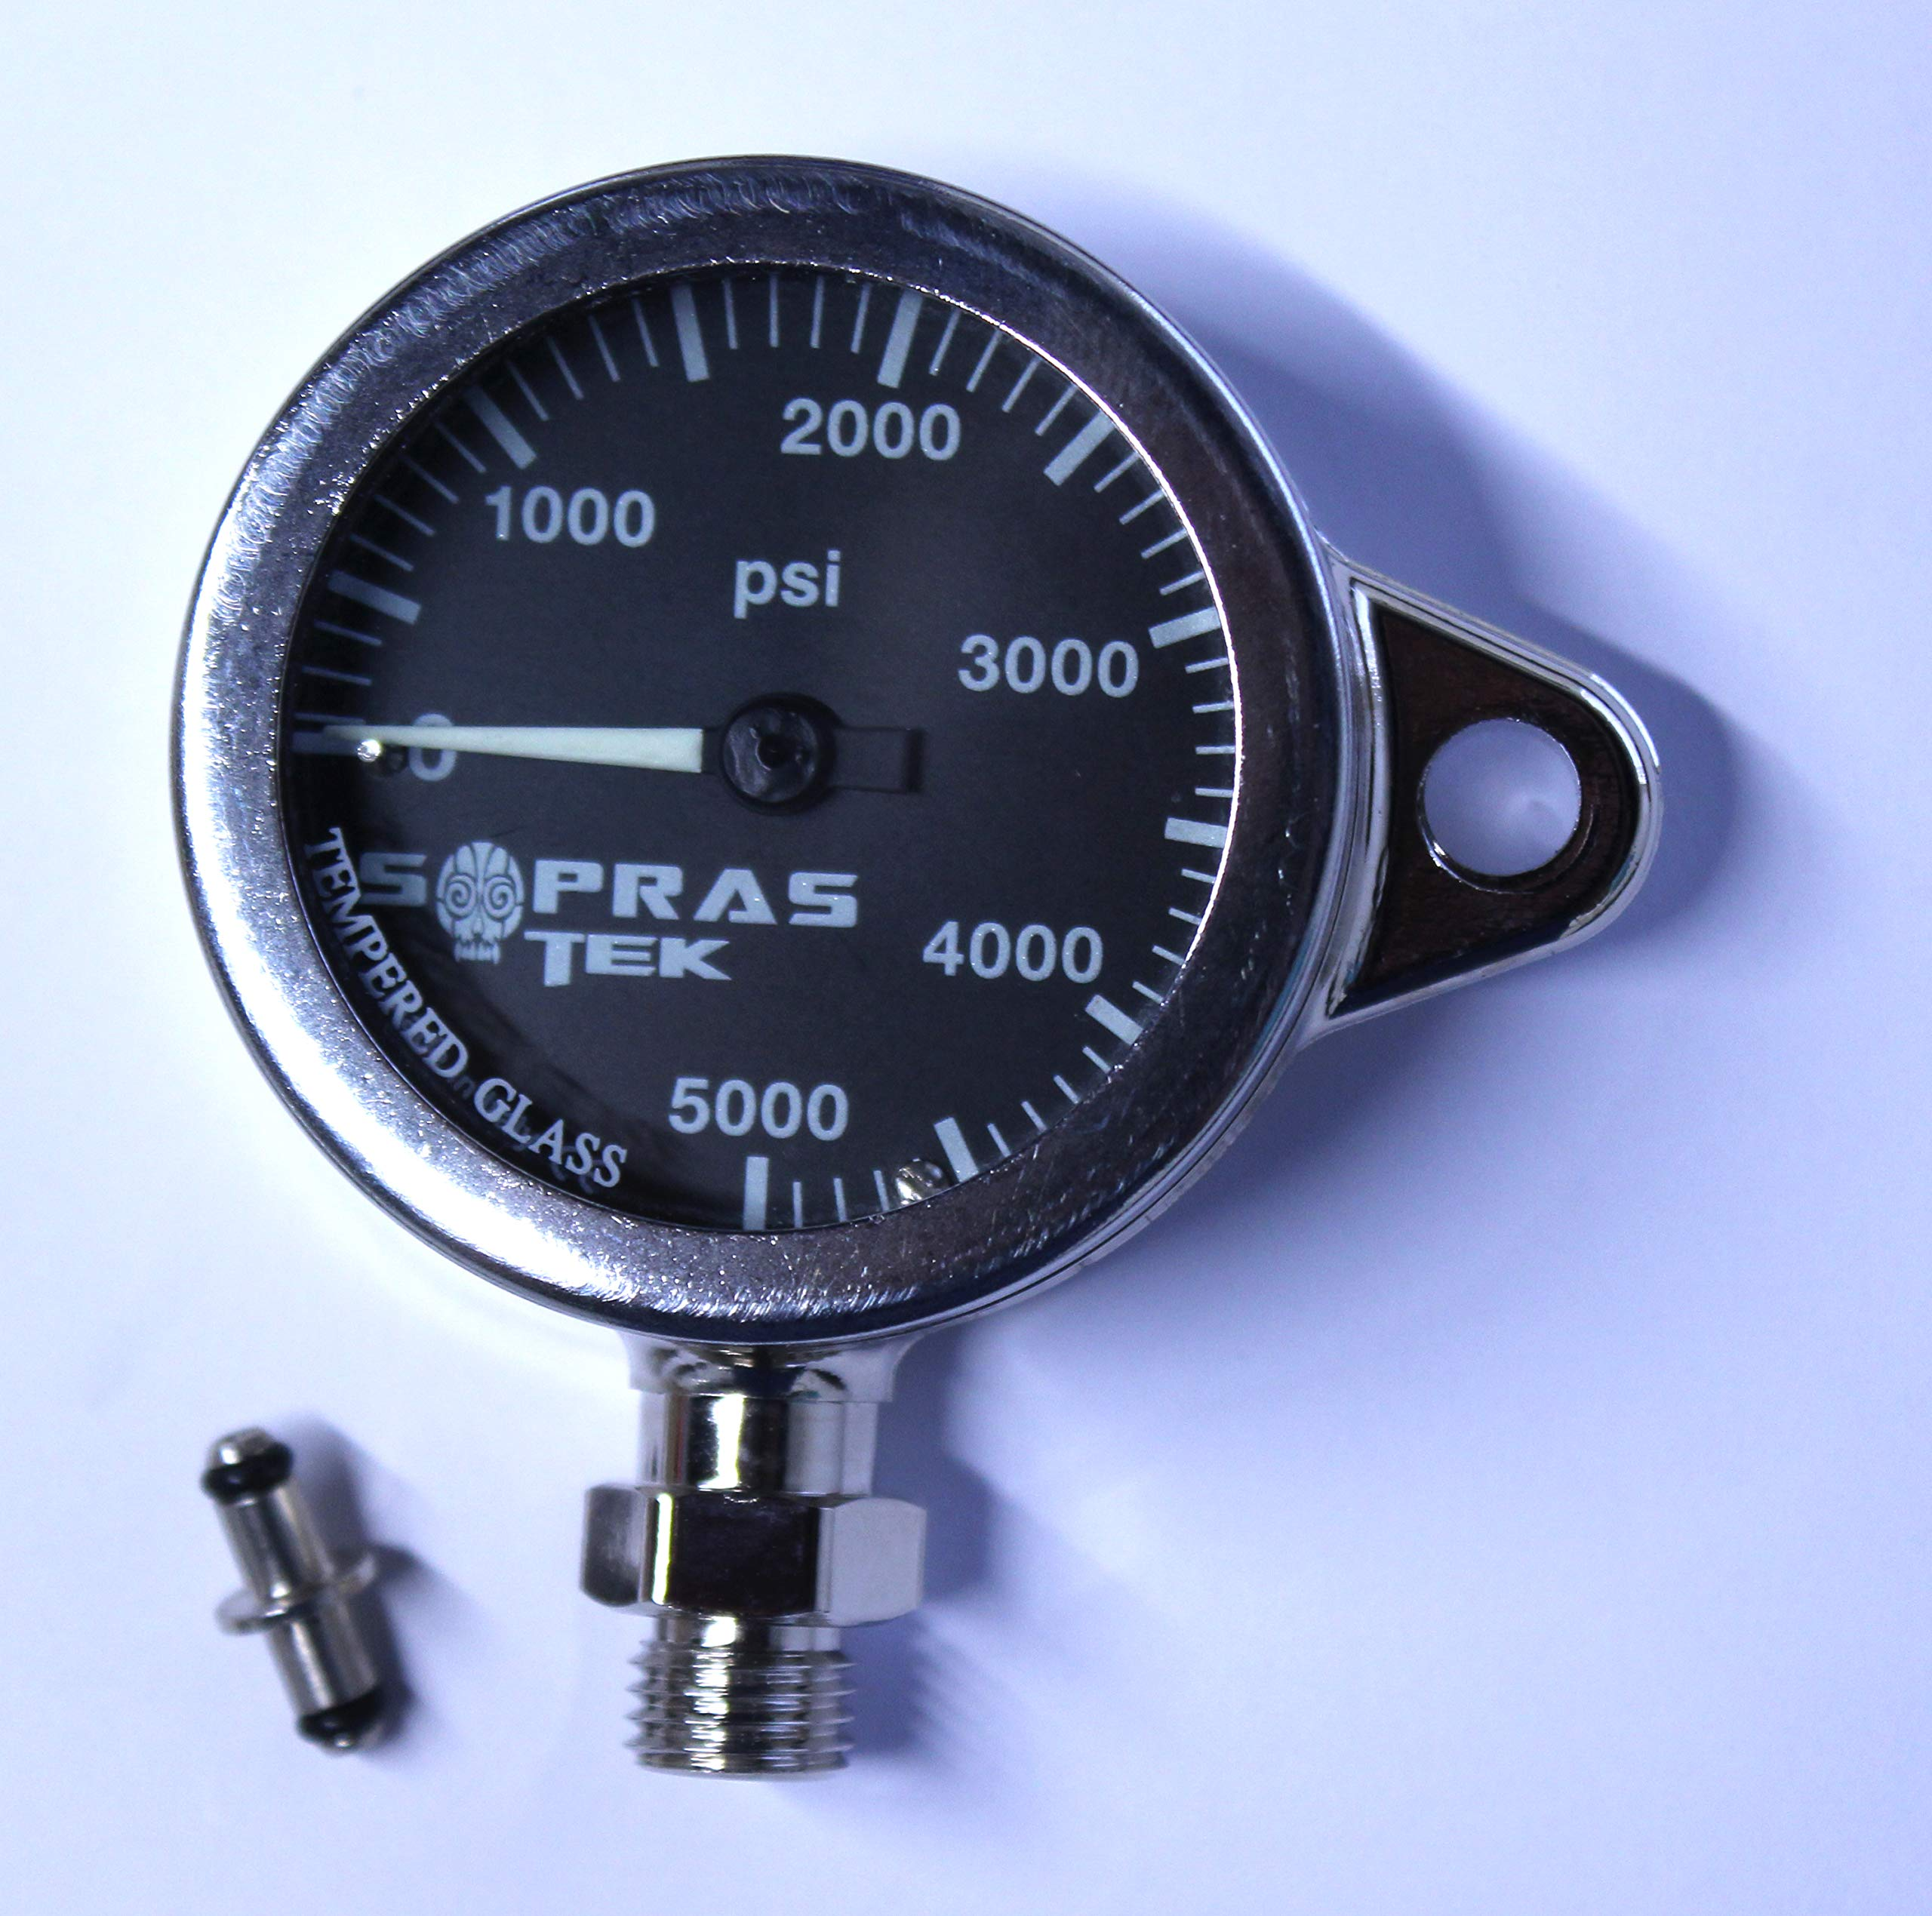 Dixie Diver SOPRAS SUB Plated TEK Brass SPG Imperial Pressure Gauge Black PSI 2 INCH Clip Ready Chrome Plated